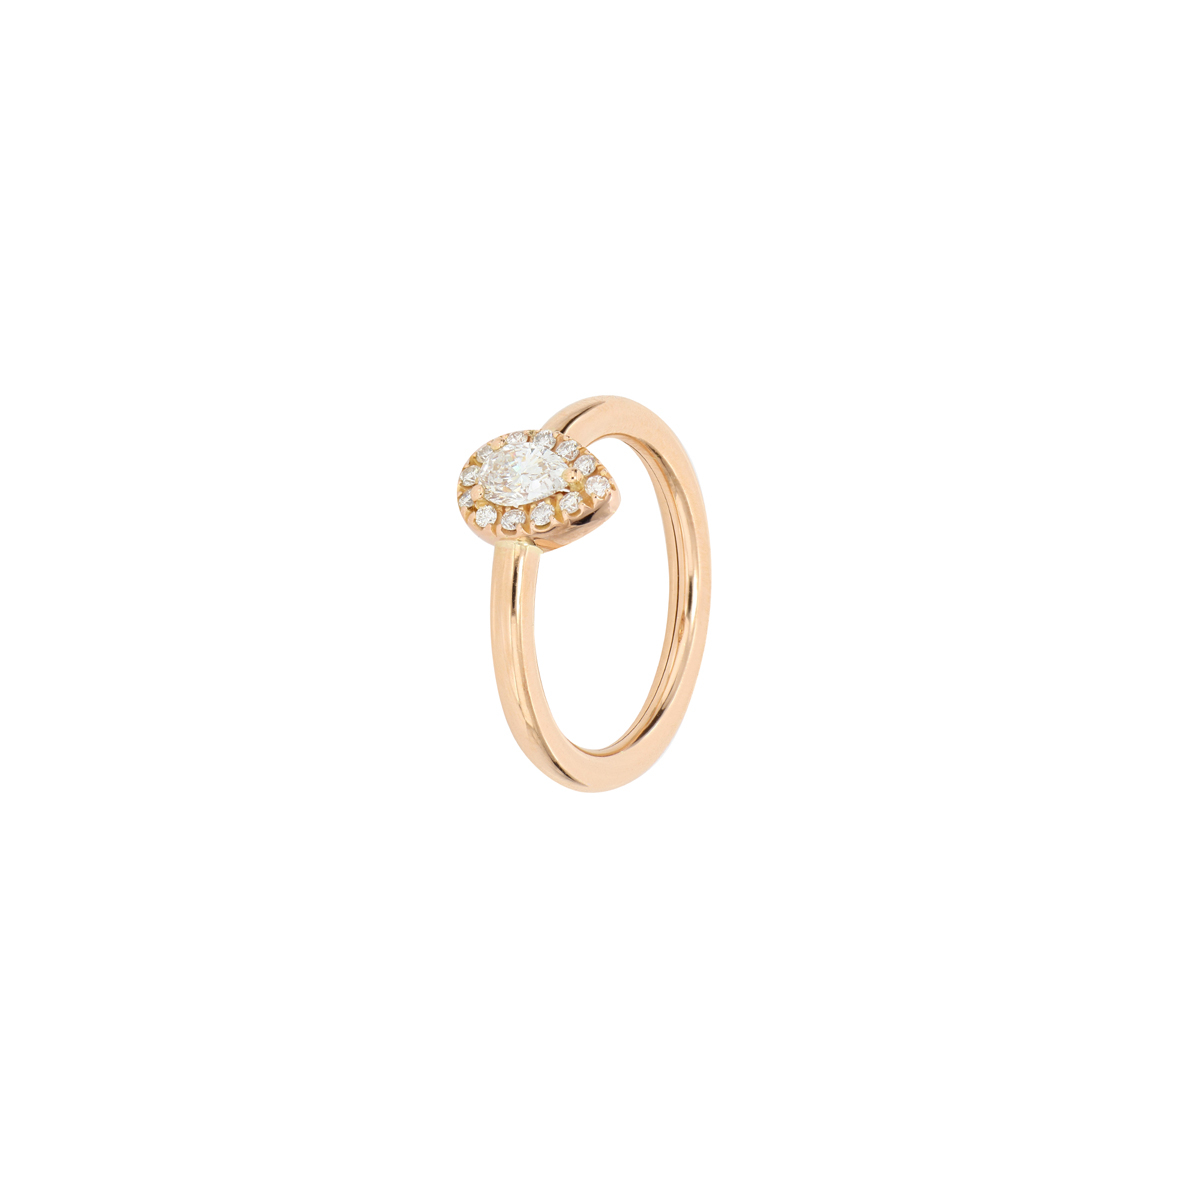 Red Gold Pear-Cut Diamond Halo Ring